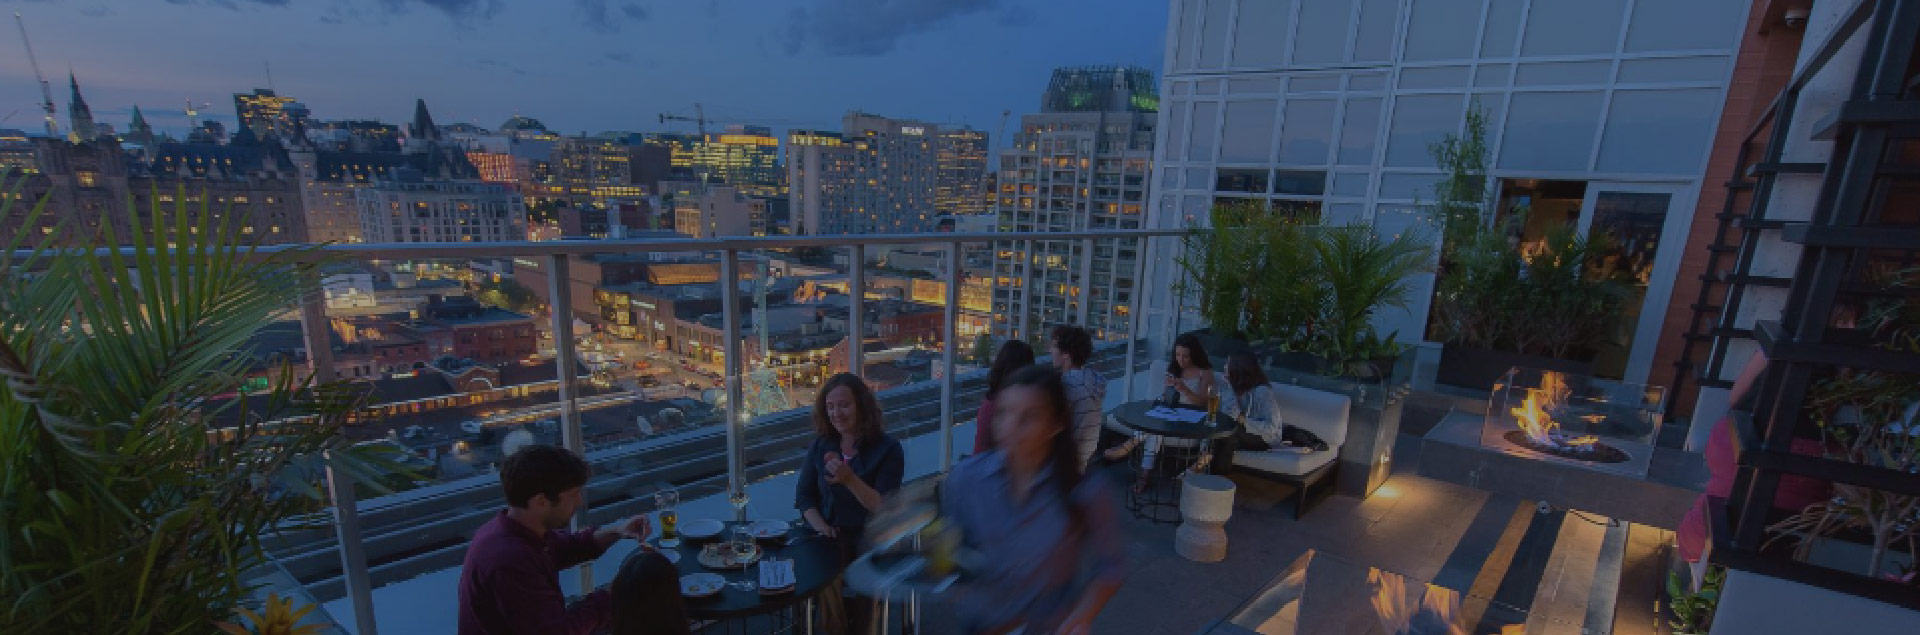 young adults enjoying a meal on a rooftop restaurant patio overlooking Ottawa